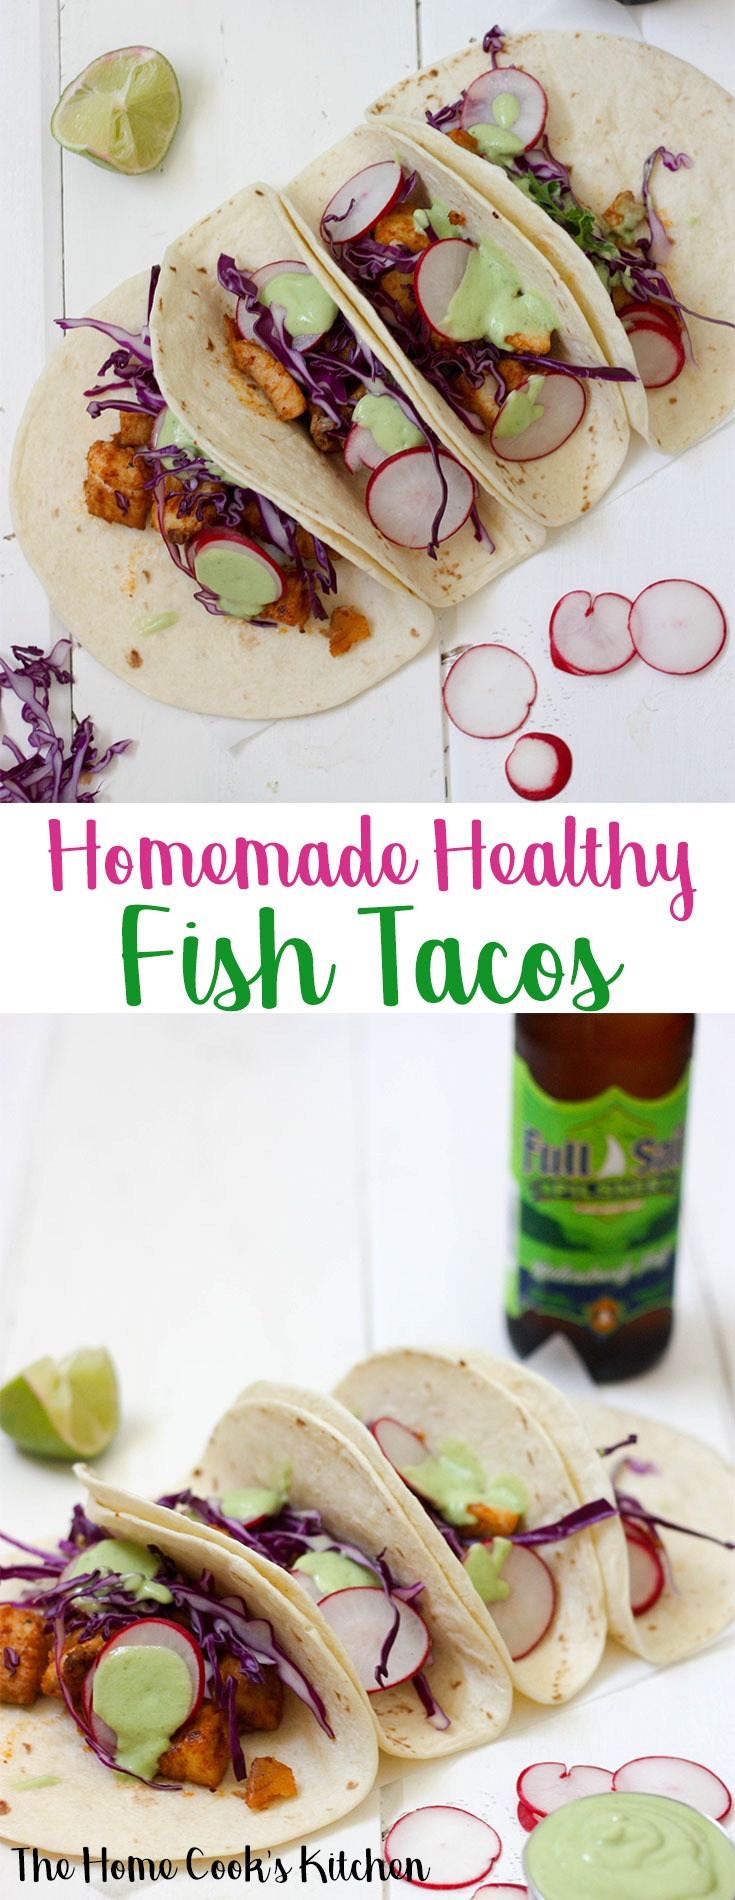 These healthy fish tacos are light, fresh and full of flavour. Made from scratch with homemade ingredients, these are great for weekend entertaining! #tacos #healthytacos #fishtactos #cincodemayo #homemadetacos